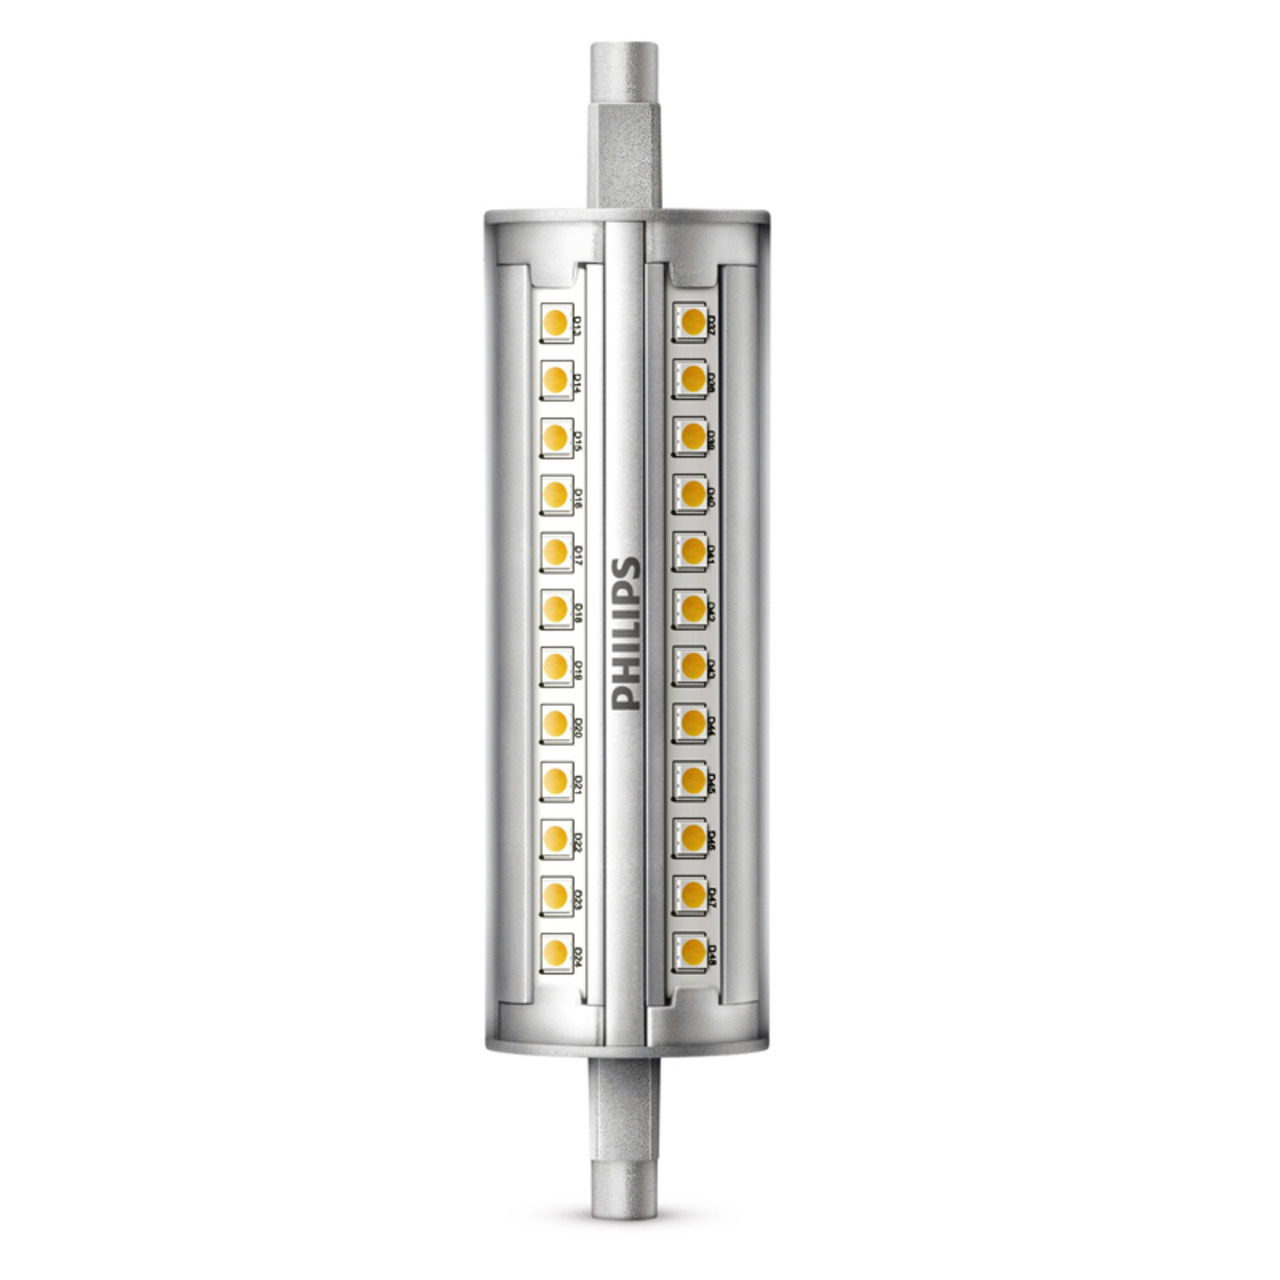 Philips CorePro LED 14-W-R7s-LED-Lampe 118mm- warmweiss- dimmbar